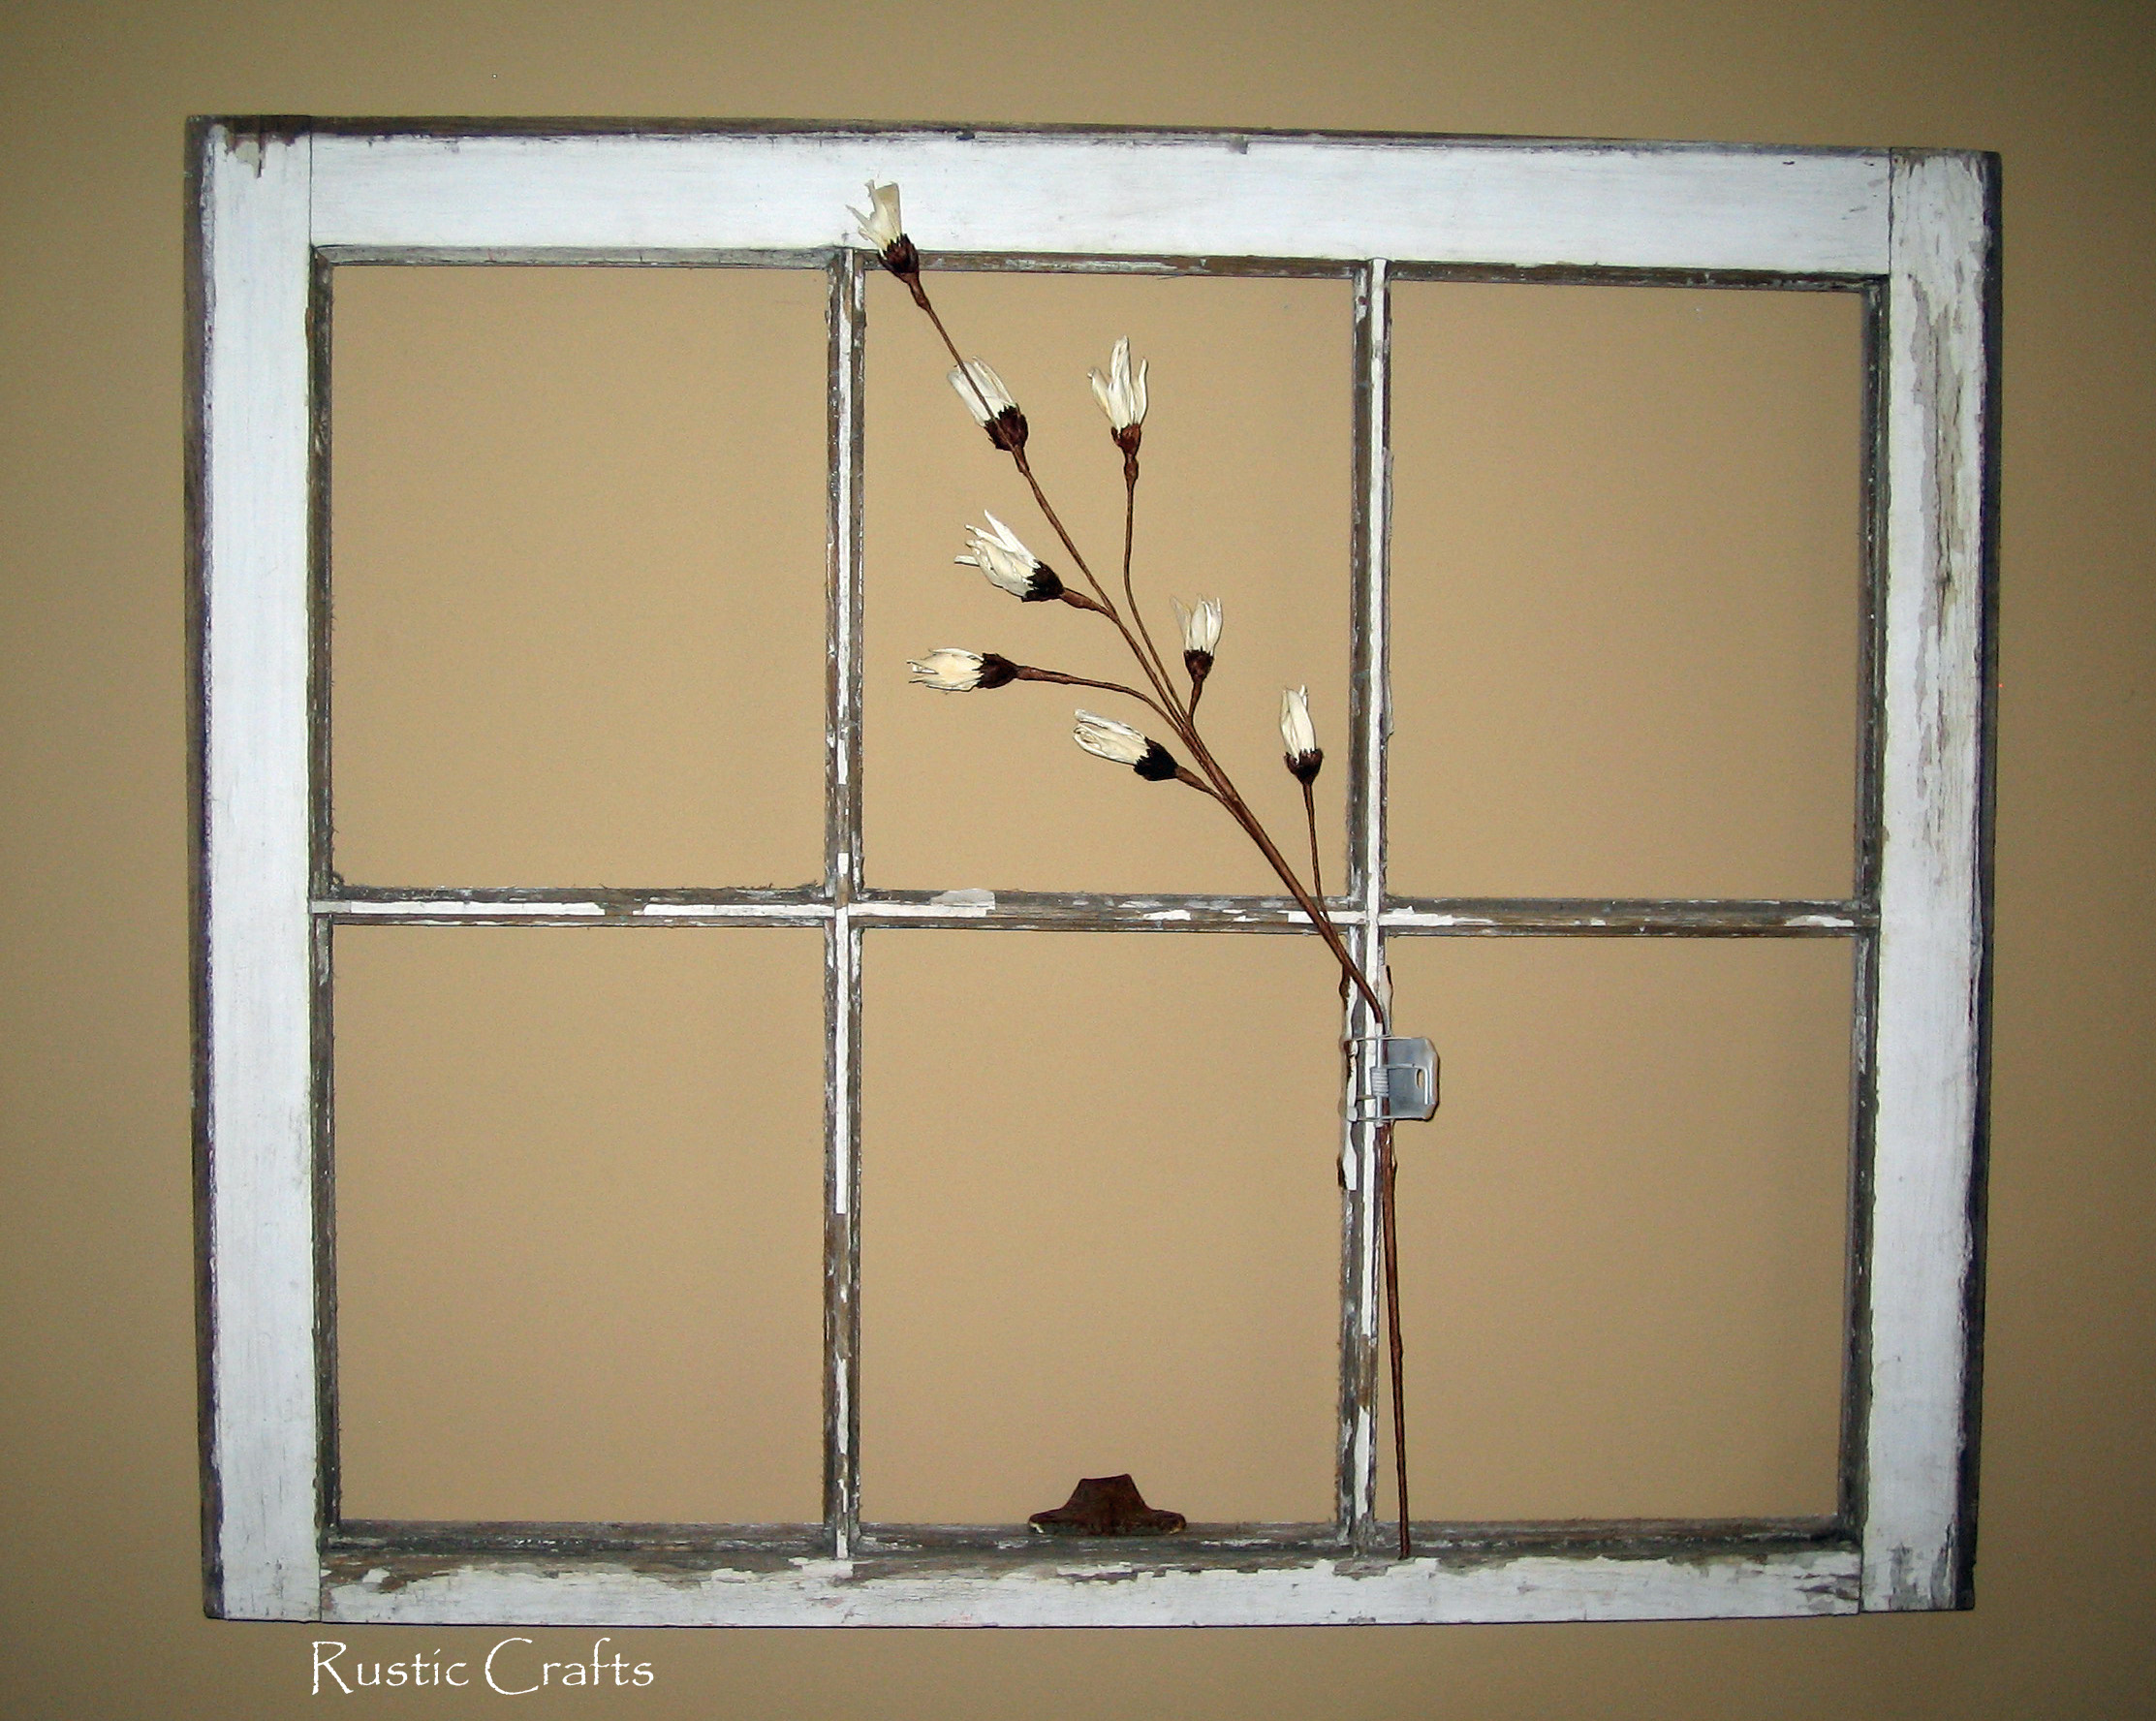 rustic-crafts.com